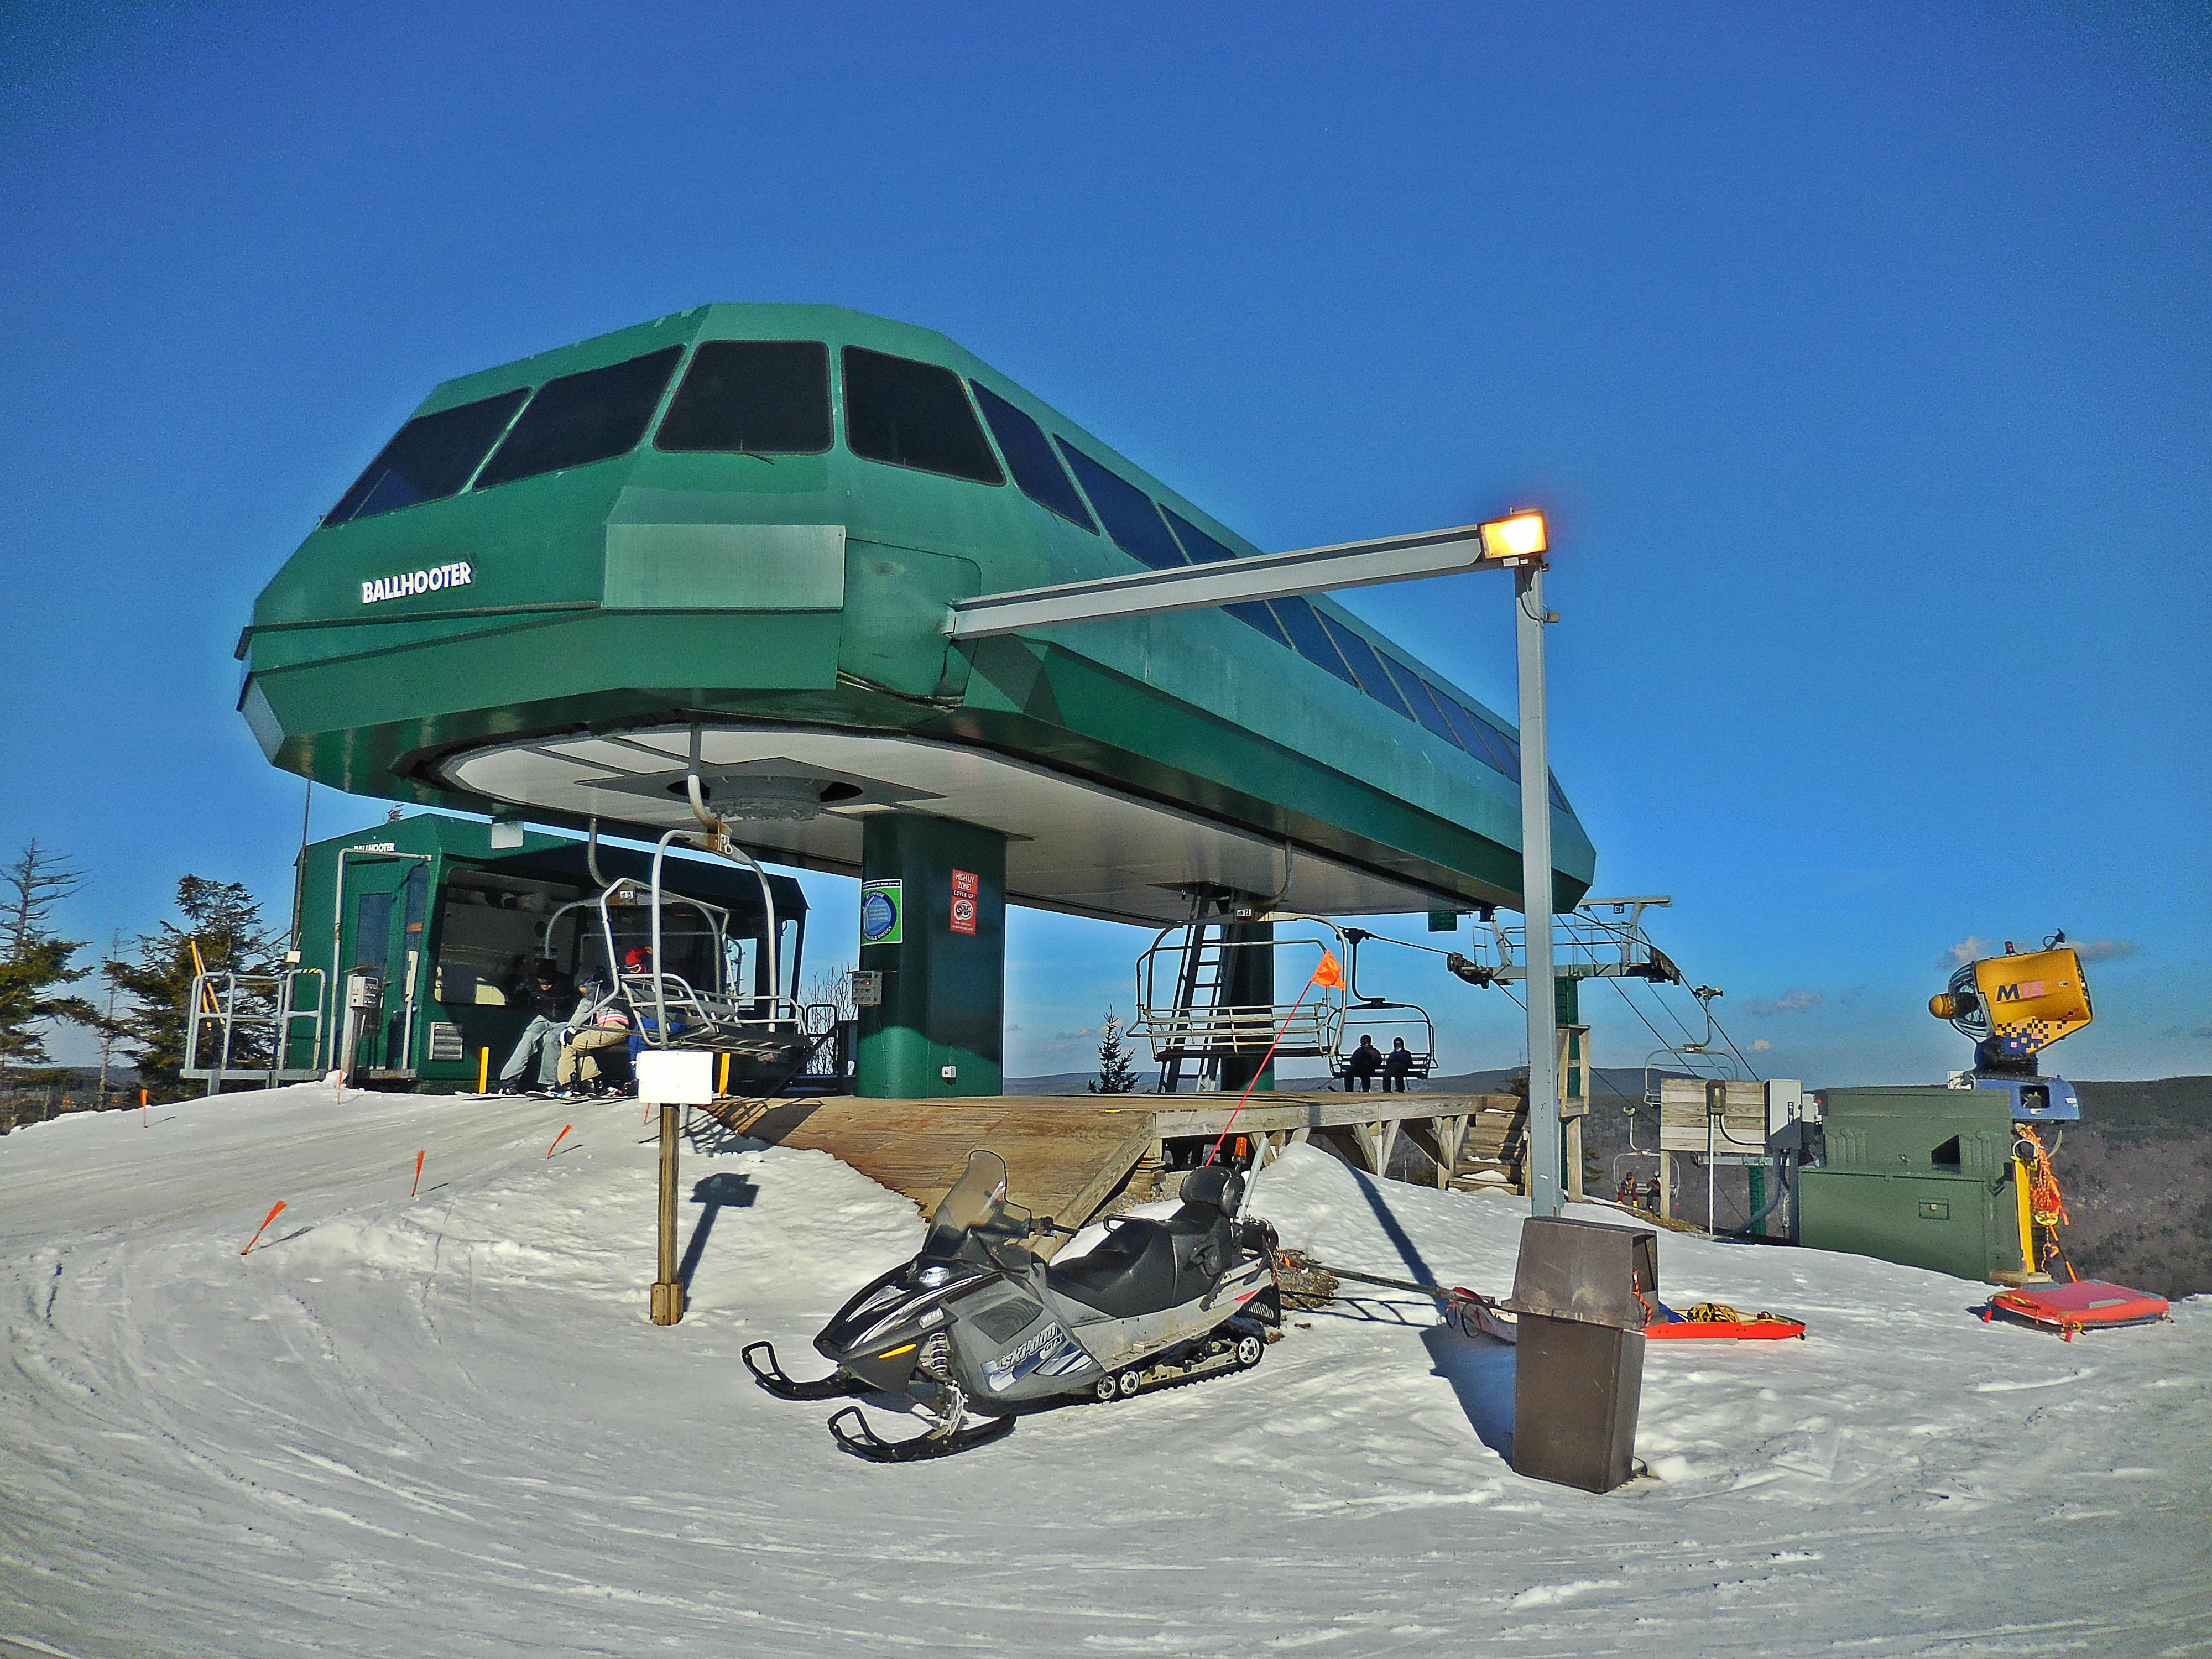 You'll be thirty yards away from the Ballhooter high-speed chair lift!